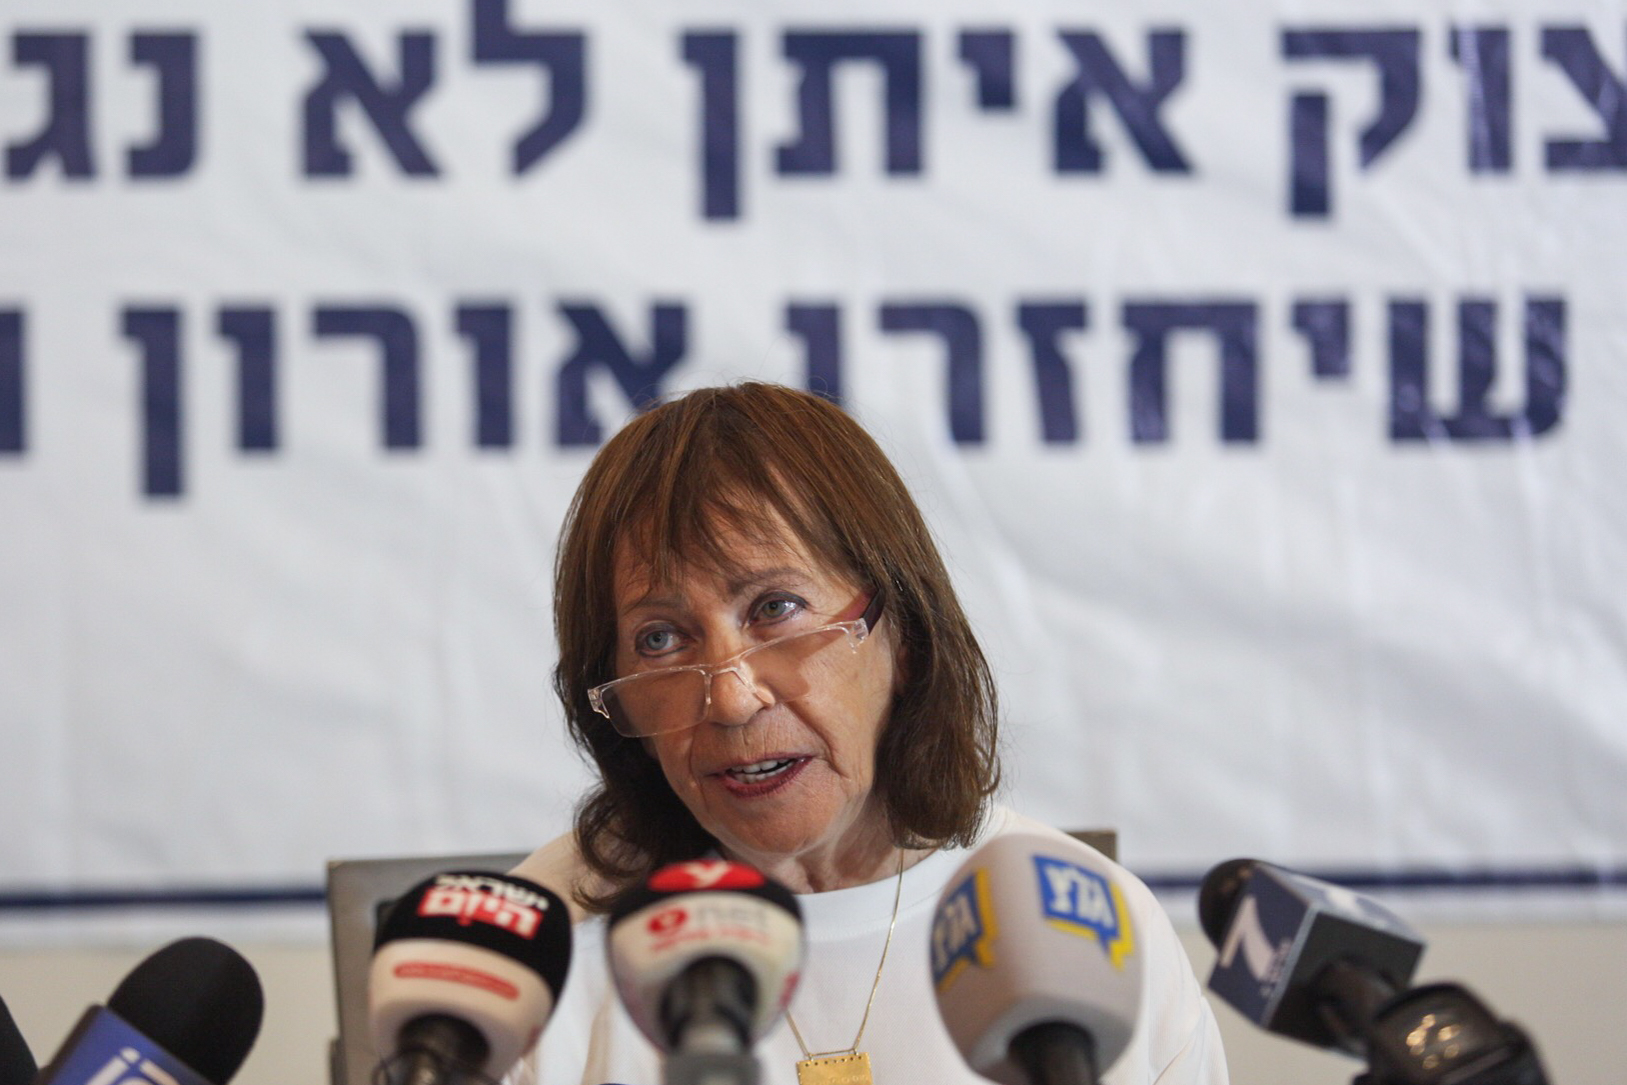 Bereaved mother says Netanyahu yelled at her two years ago, called